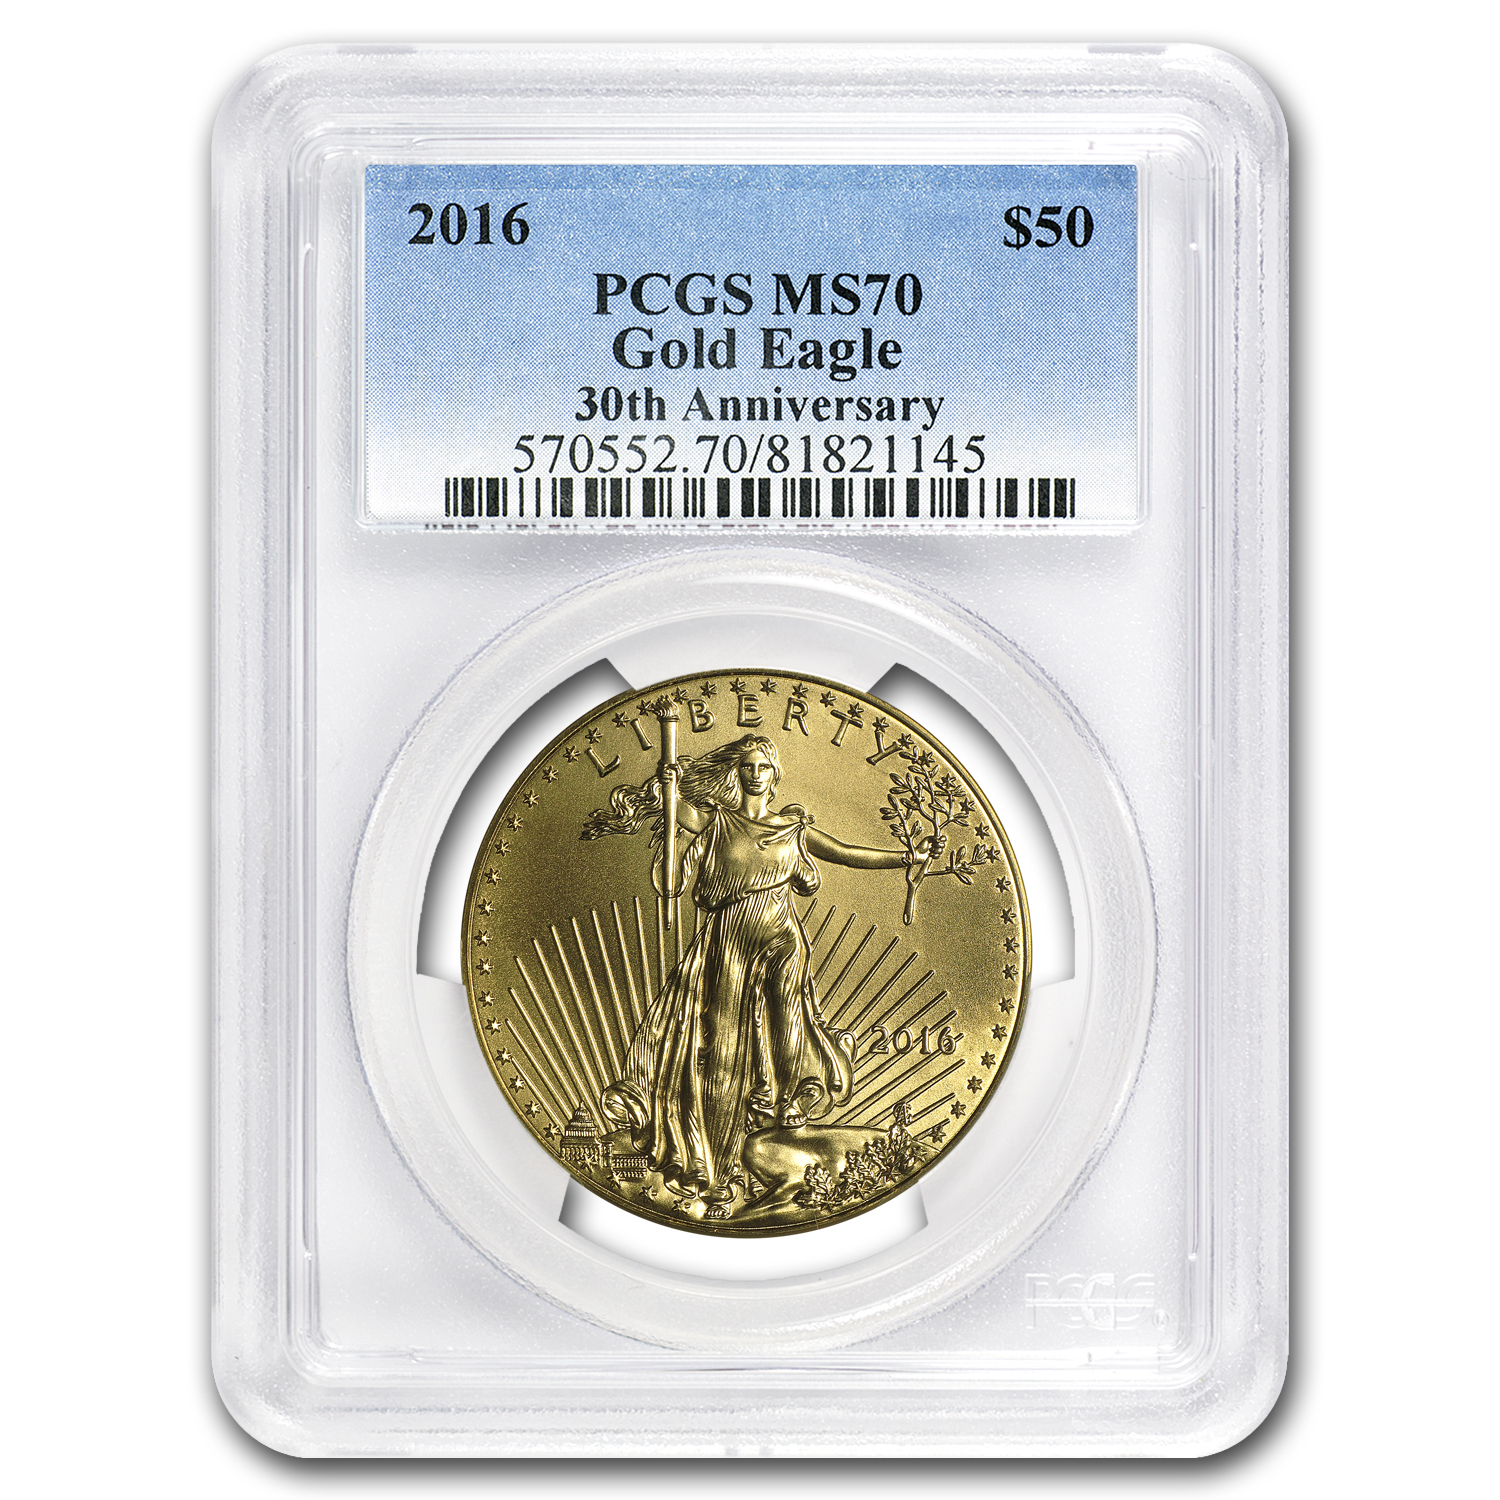 2016 1 oz Gold American Eagle MS-70 PCGS